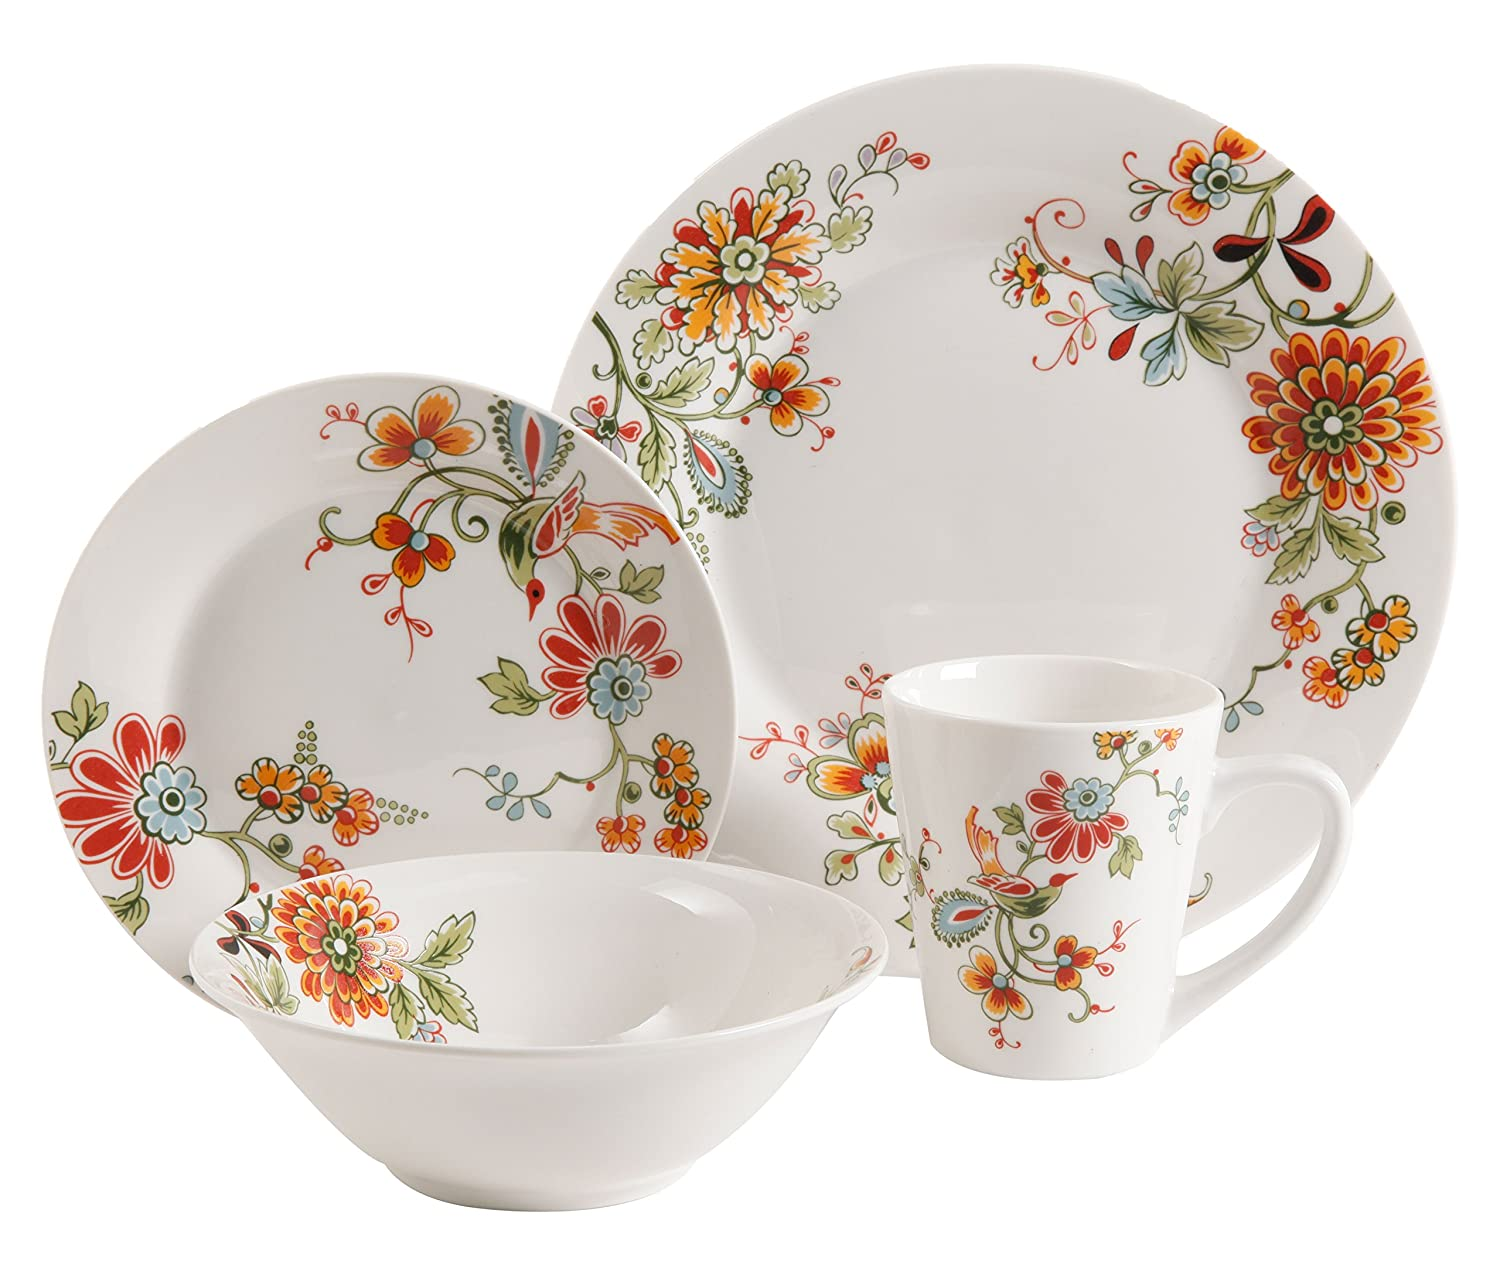 Gibson Home 16 Piece Doraville Floral Dinnerware Set, Multicolor 92950.16RM